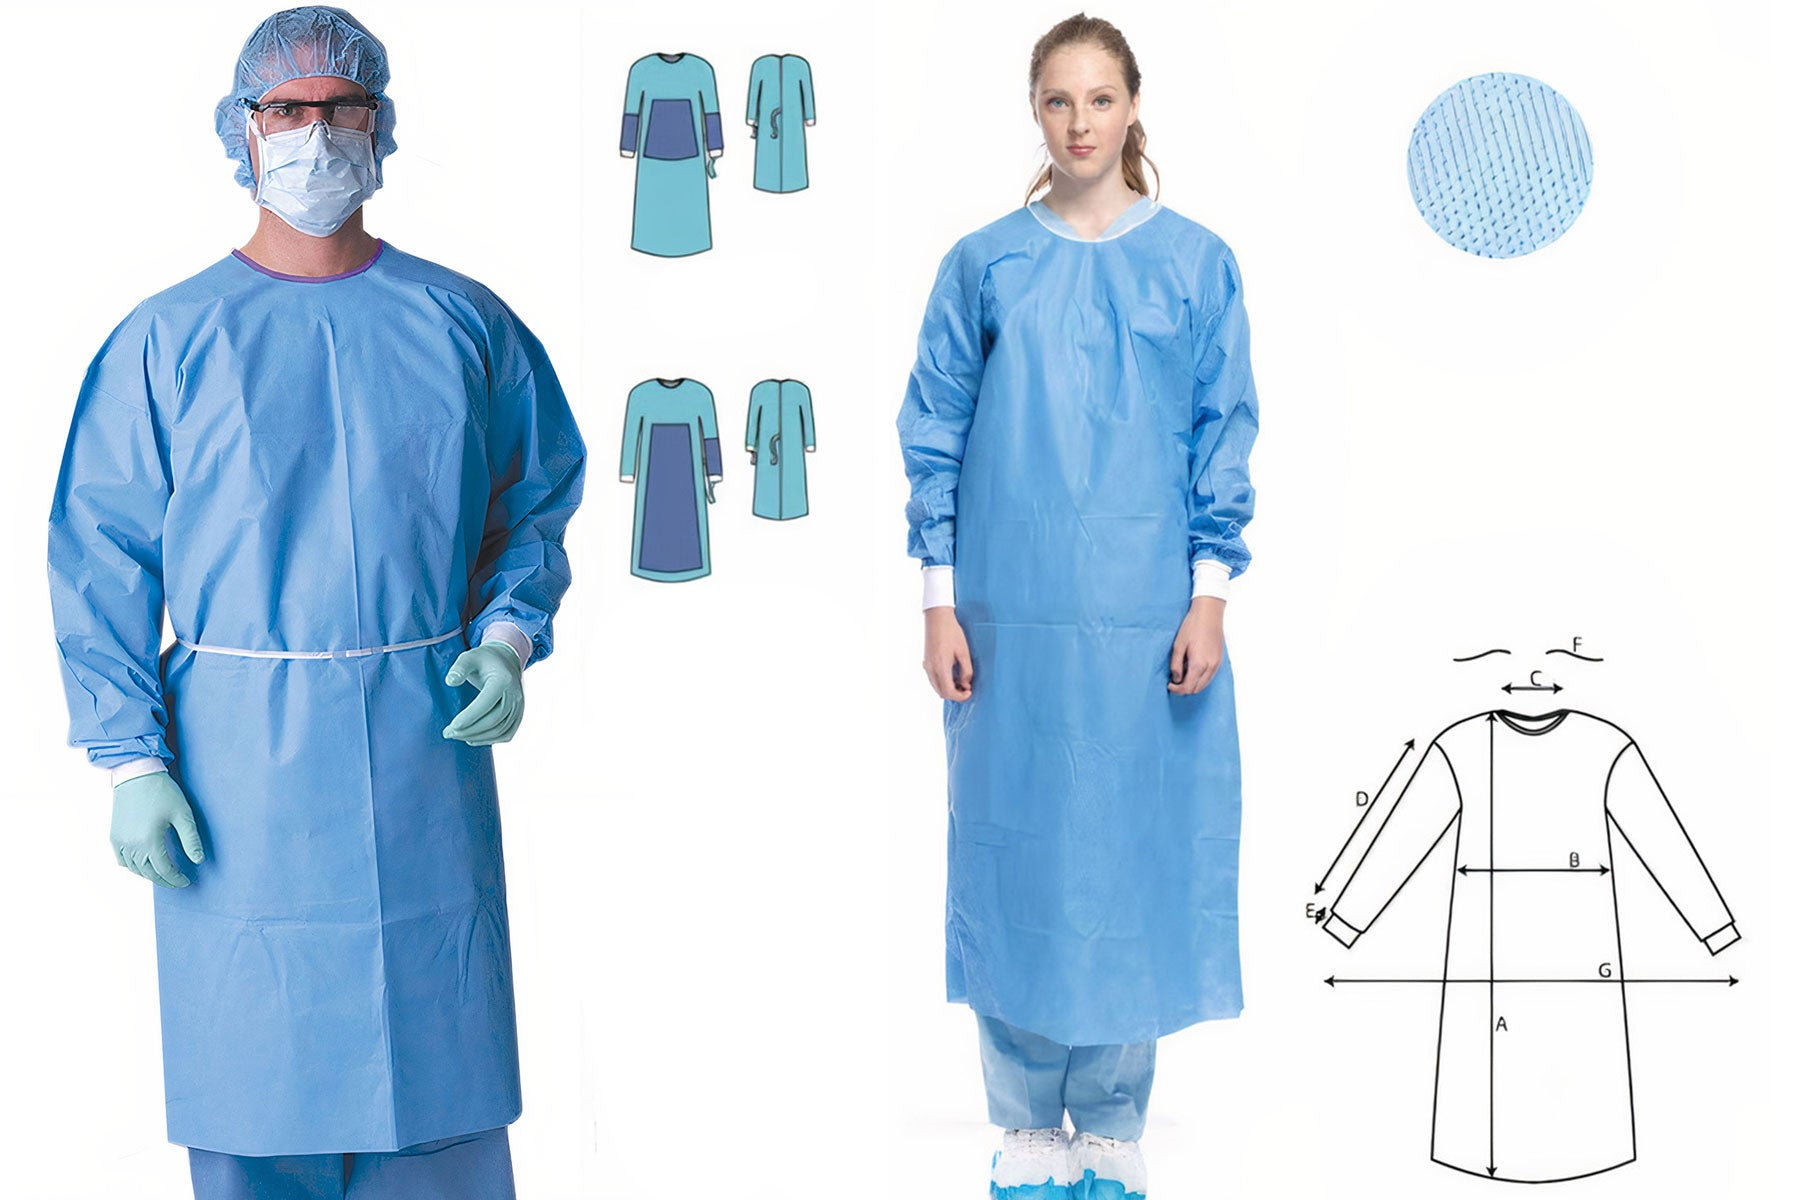 1686 Sugical Gown Level 3 - Sizes XS-XXL AAMI CERTIFIED | PPE Advantate powered by dS Product Hunters